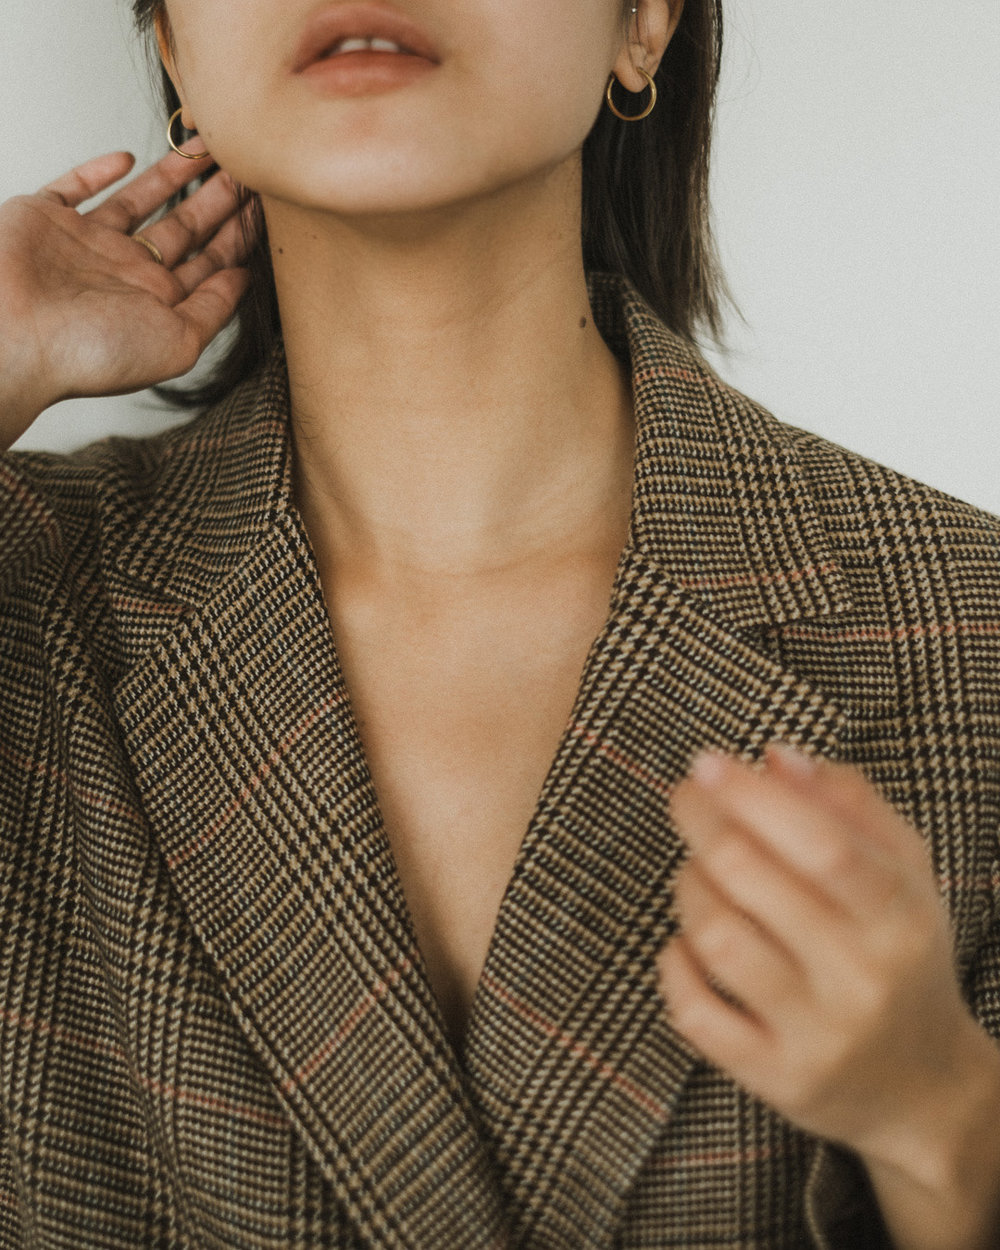 Wearing | Oak and Fort Blazer, Mejuri Open Diamond Ring, Beaded Ring, Diamond Solo Ring, & Midi Hoops